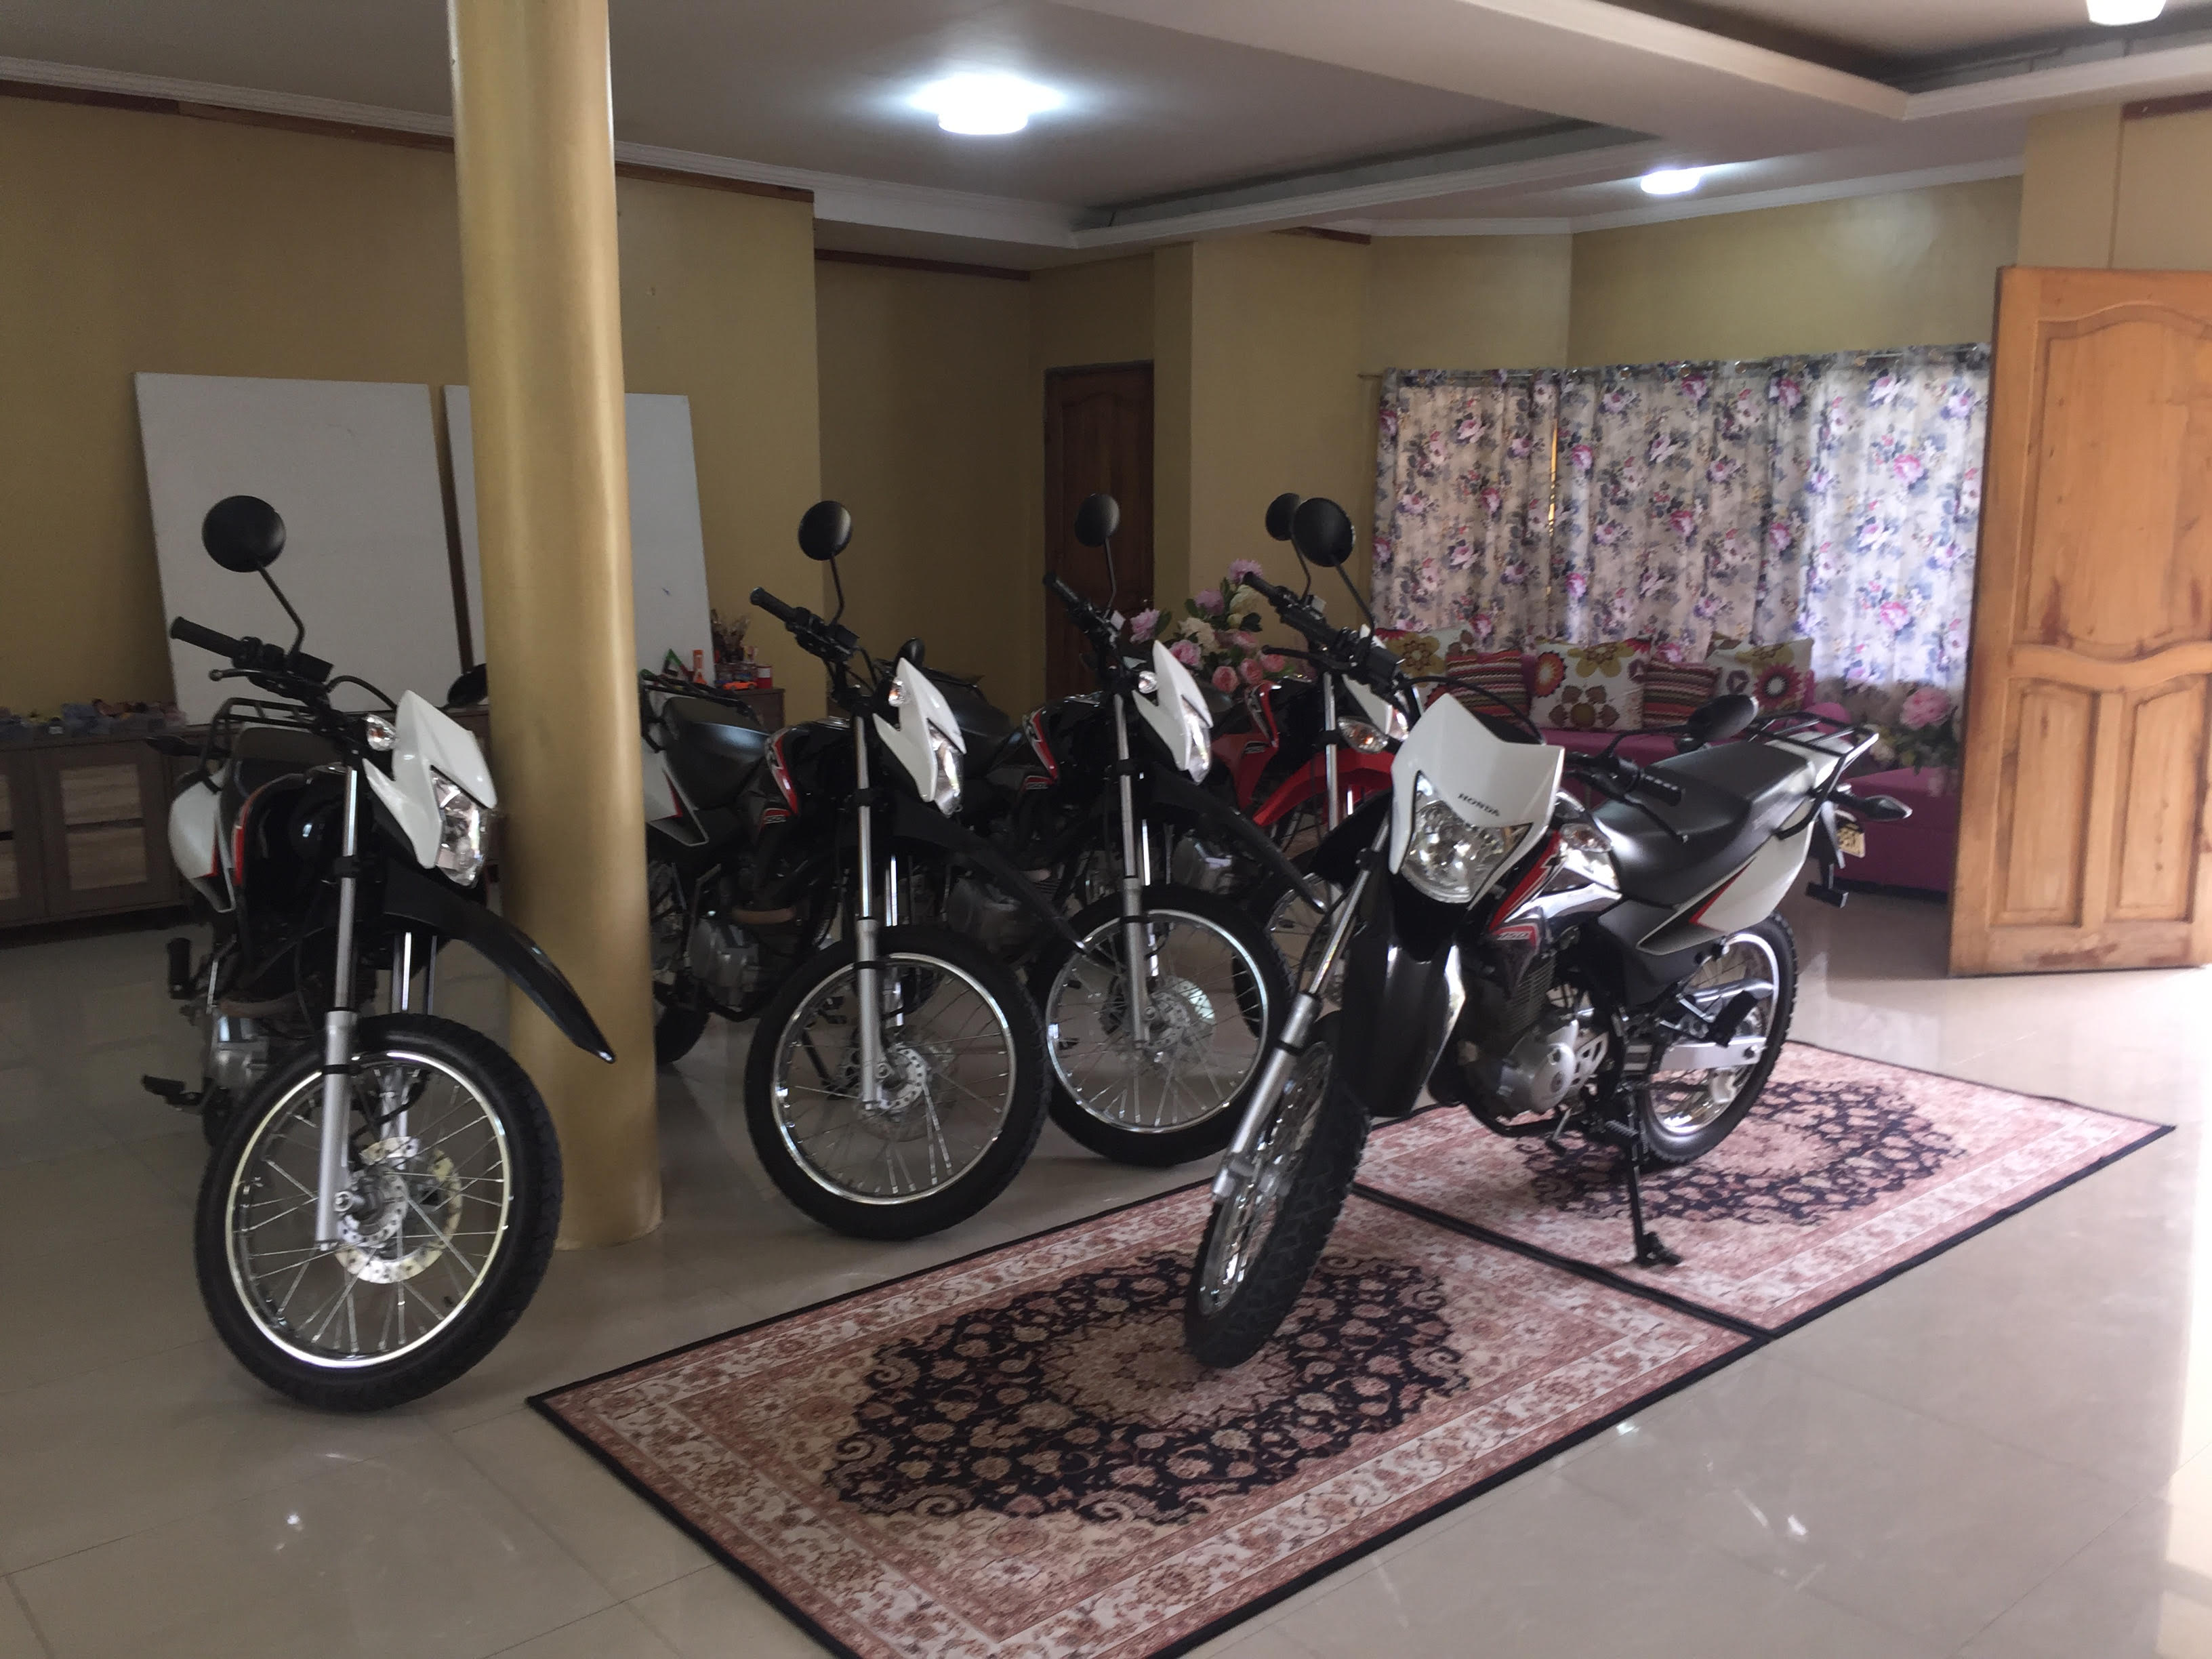 Lowest prices on motorcycles for rent in Bohol